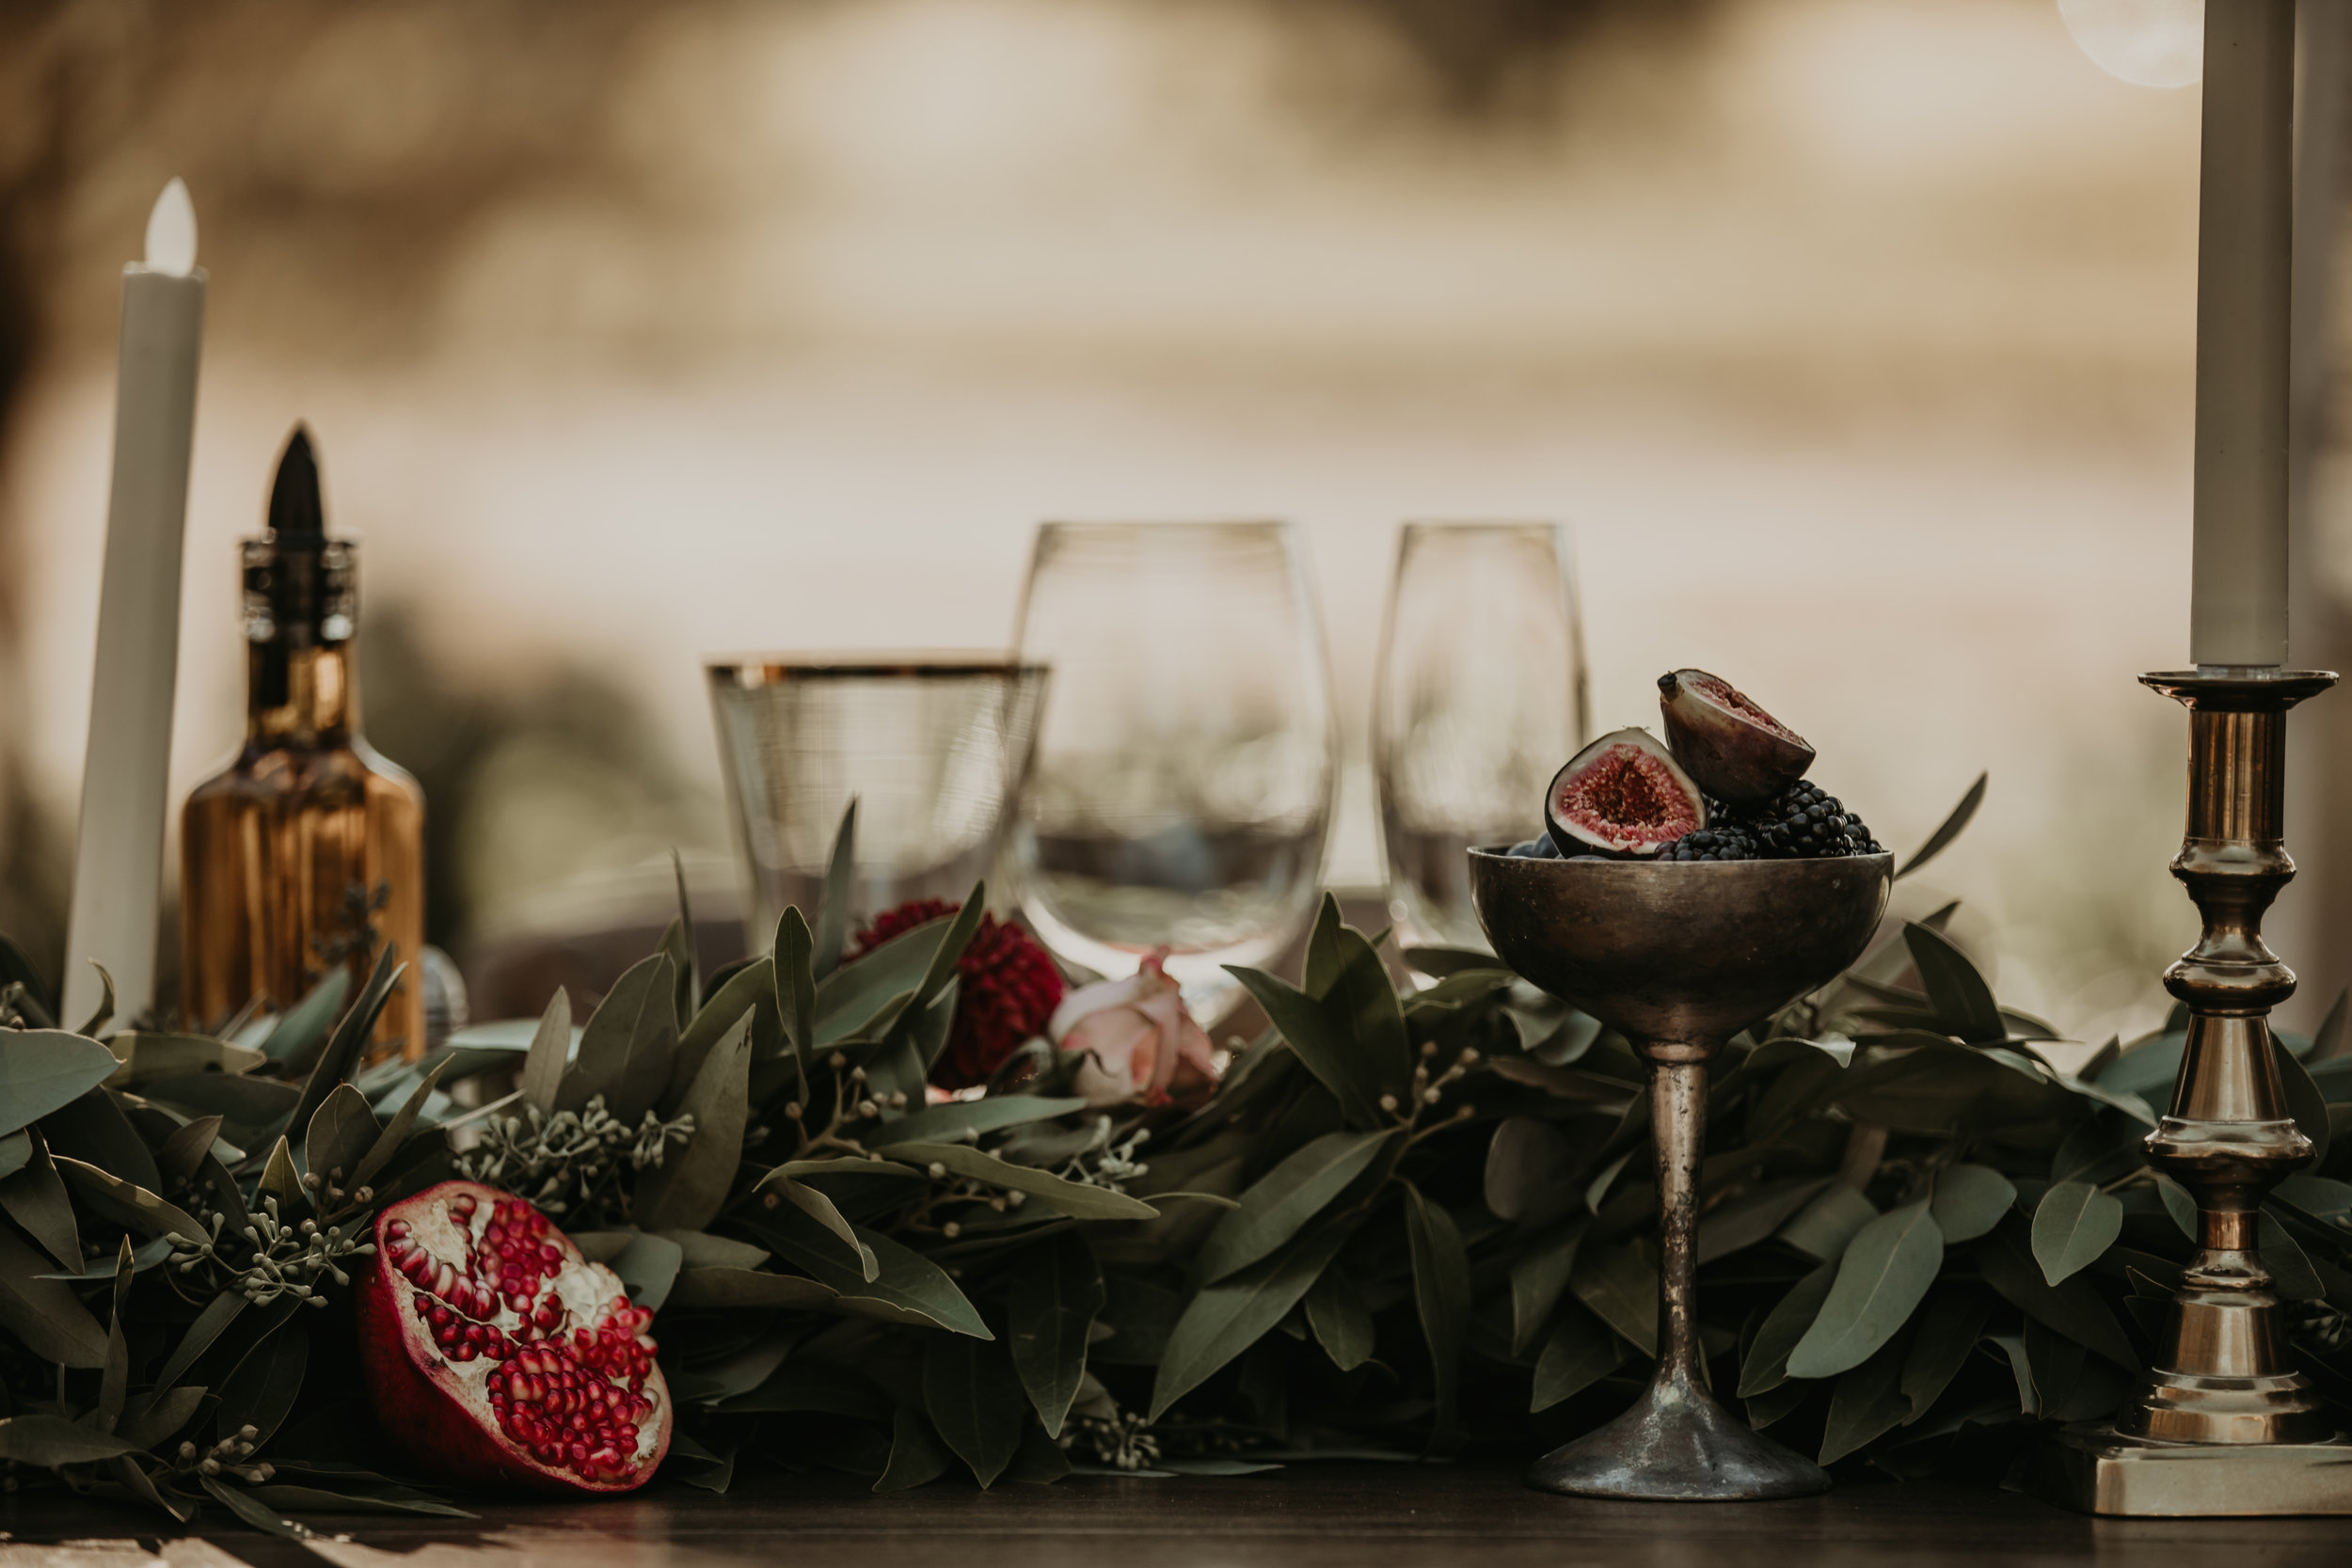 Berries, pomegranates, and greenery for a dramatic wedding tablescape by Venn Floral with Whitney Nelson Events at Beltane Ranch. Photographed by Vera Frances